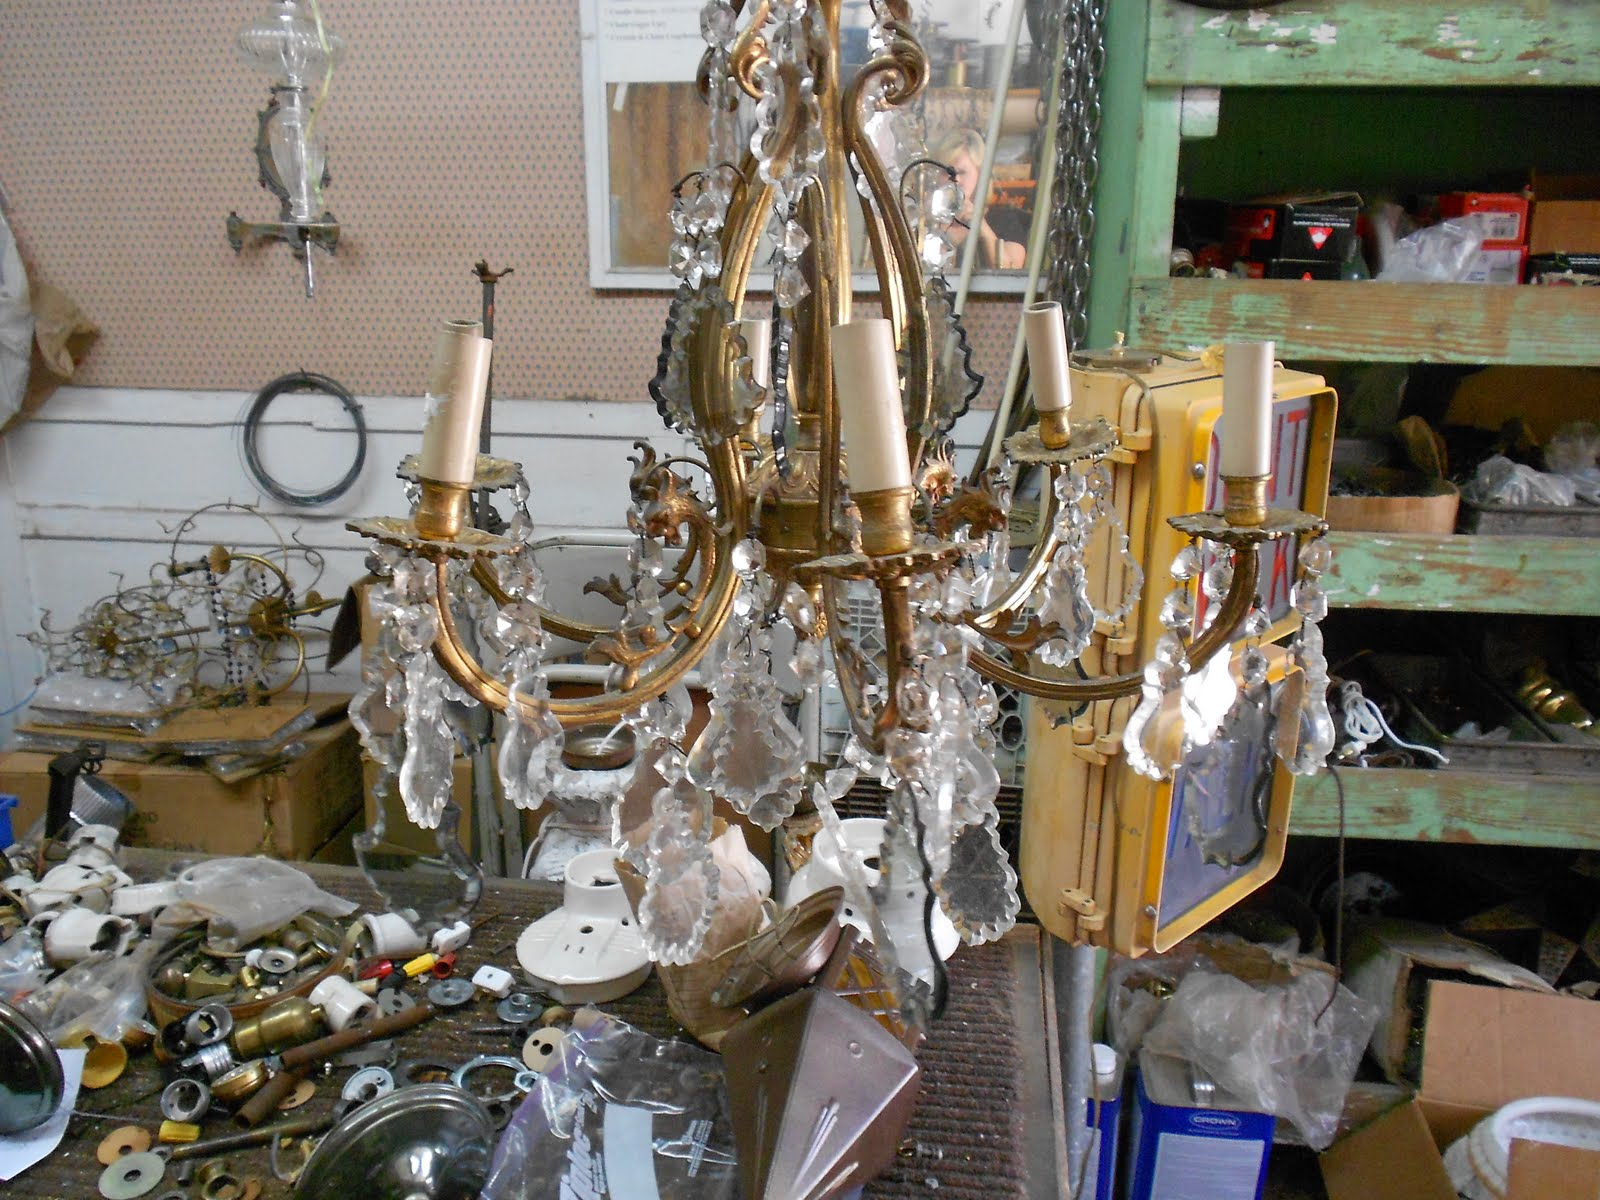 Chandelier rewiring light catalogue light ideas my faux french chateau french chandeliers and rewiring theoldhomesupplyhouse011g audiocablefo arubaitofo Gallery